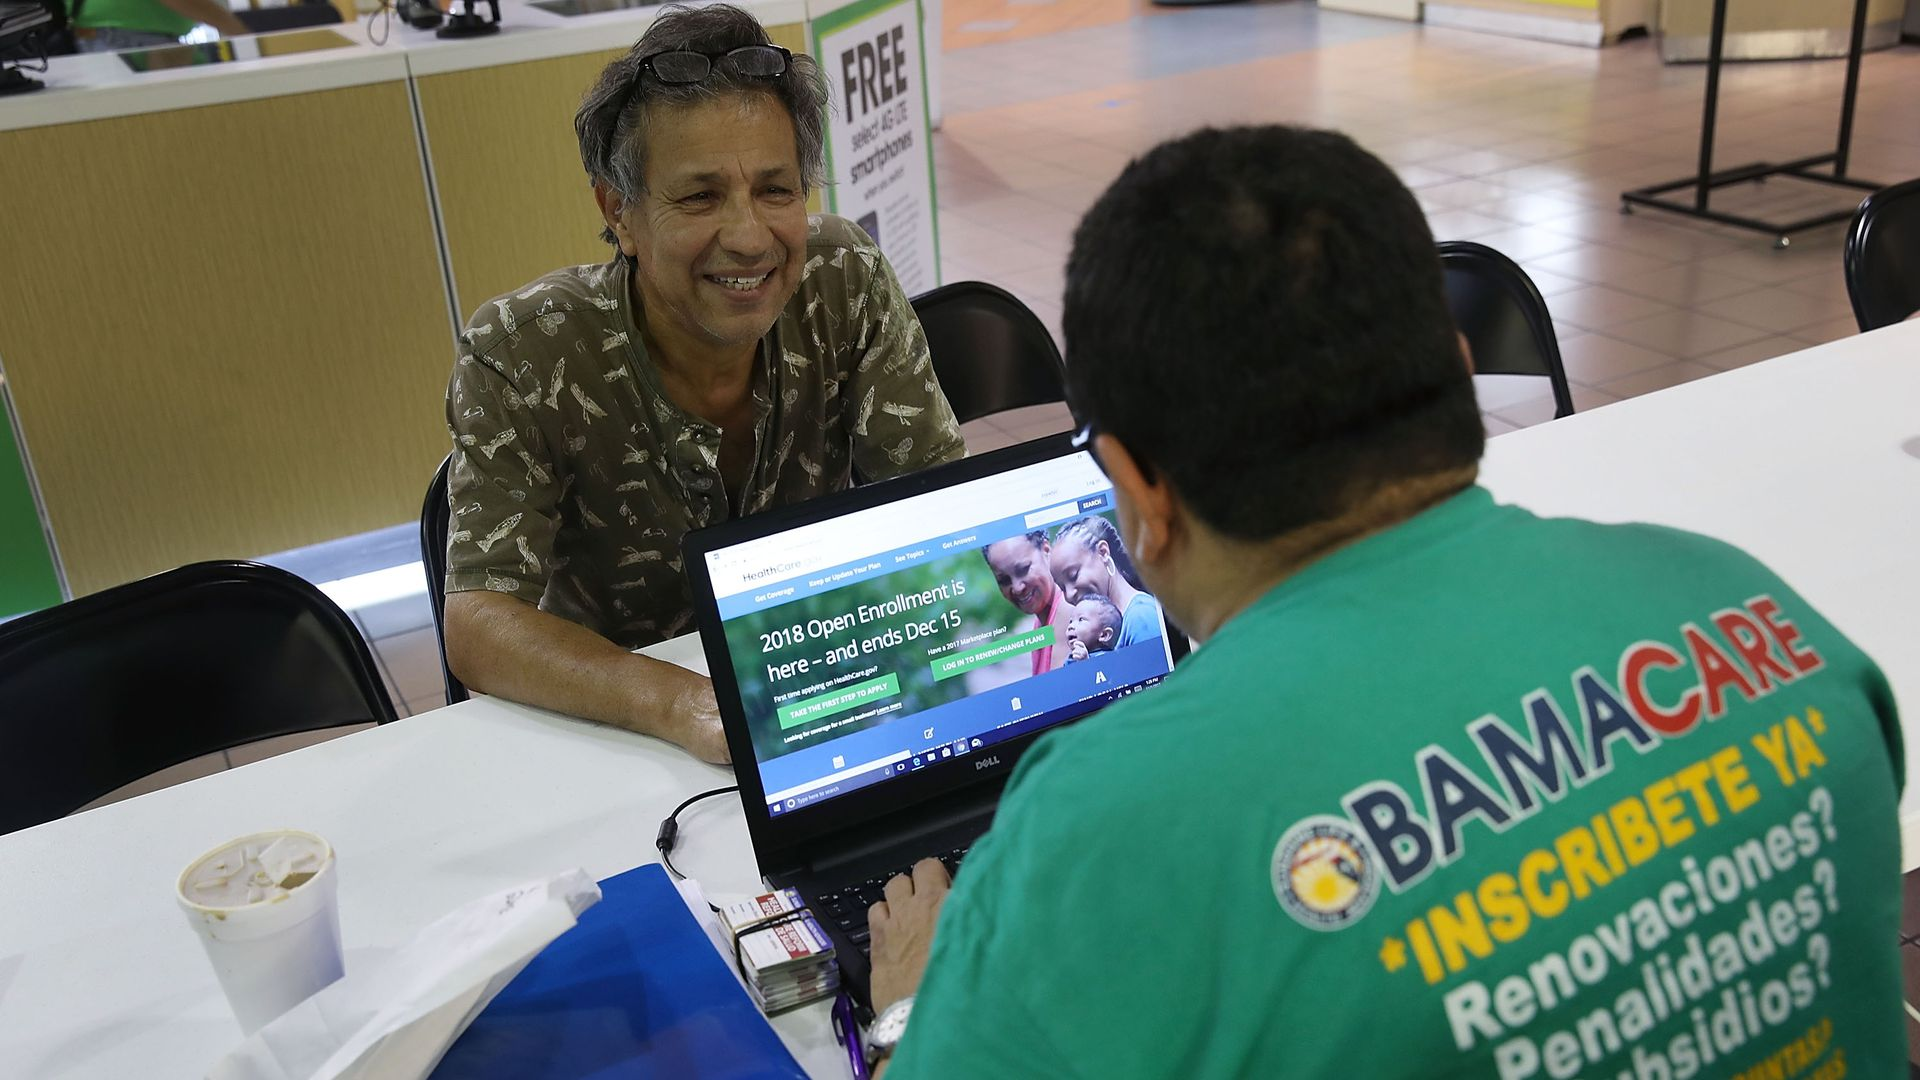 An insurance agent helps a consumer sign up for an Obamacare plan.